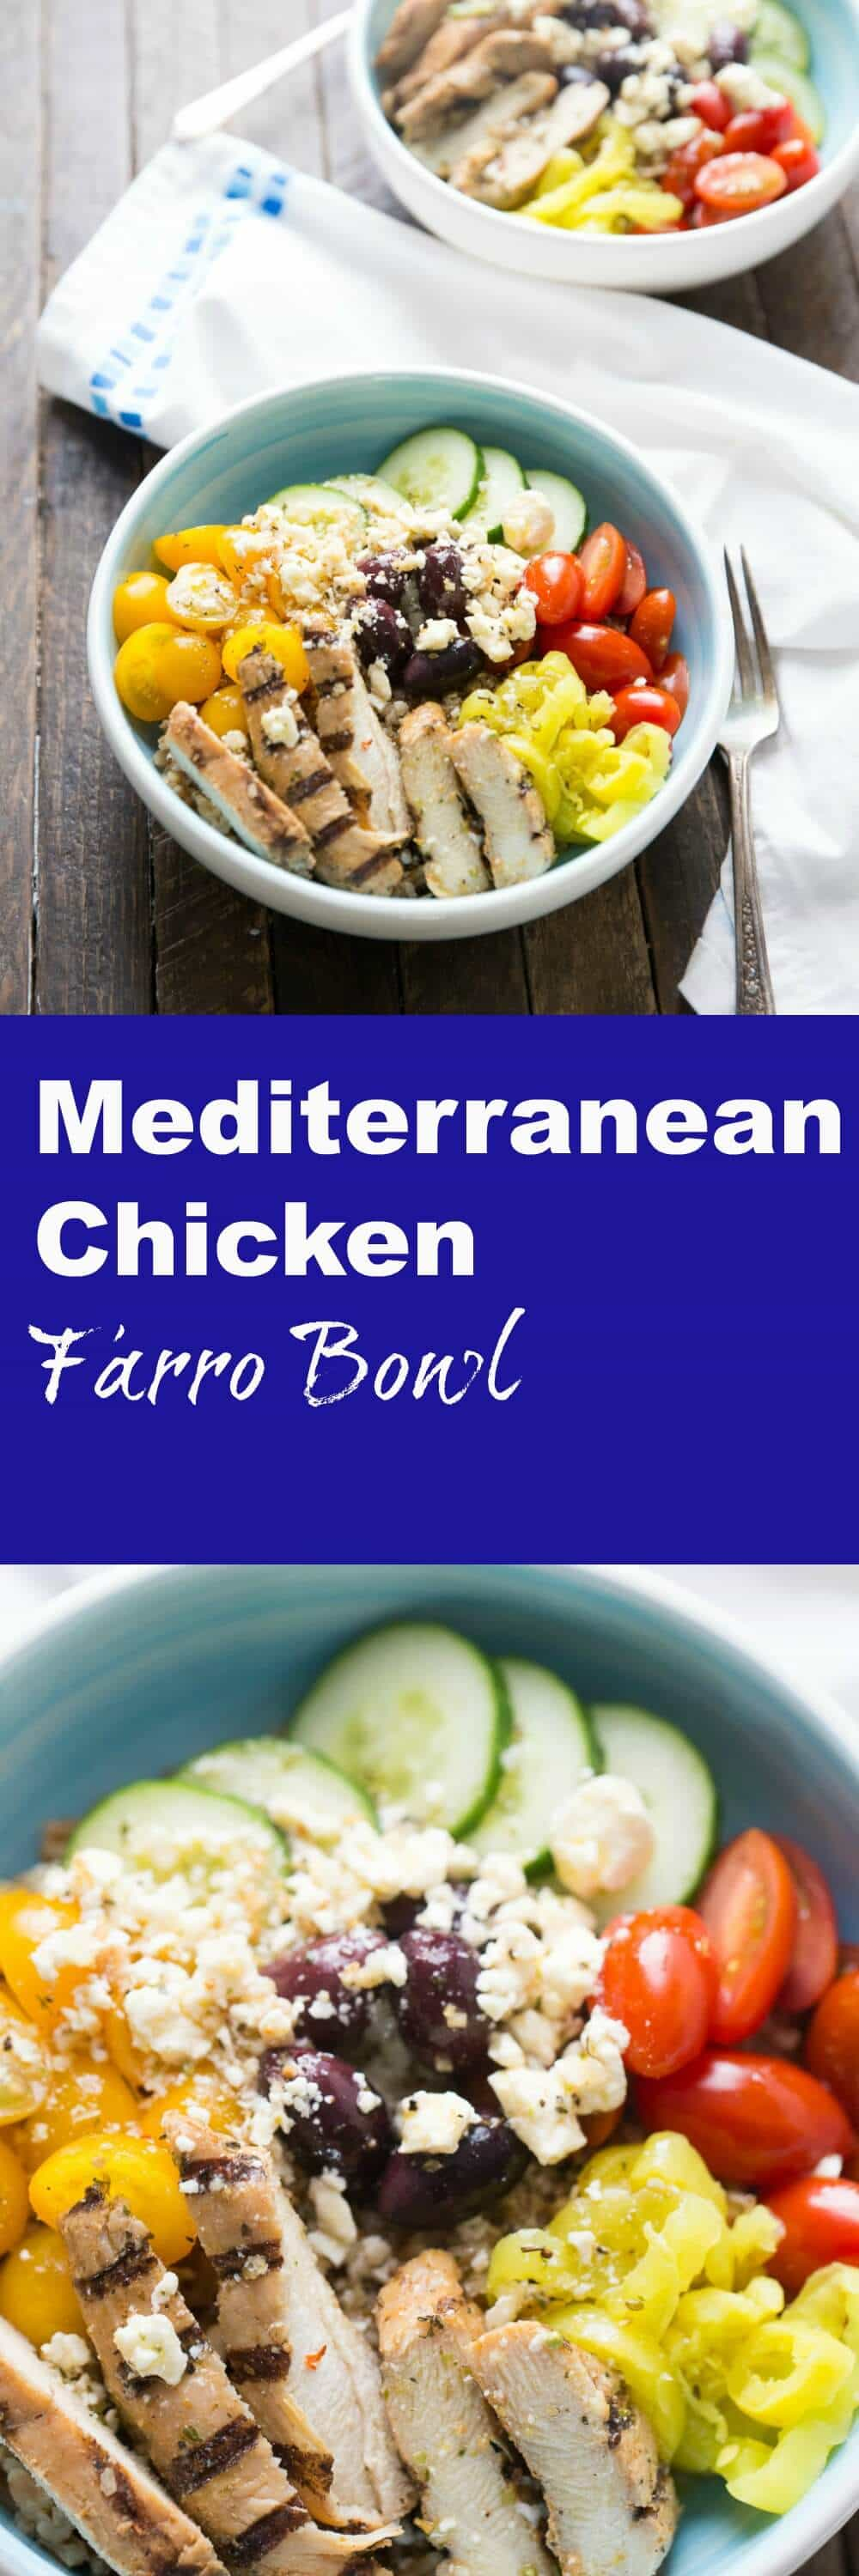 This Mediterranean chicken bowl will be one of those meals you turn to over and over again when you want something easy and healthy! This bowl is filled with so many flavors, it is absolutely delicious! lemonsforlulu.com @jvillesausage